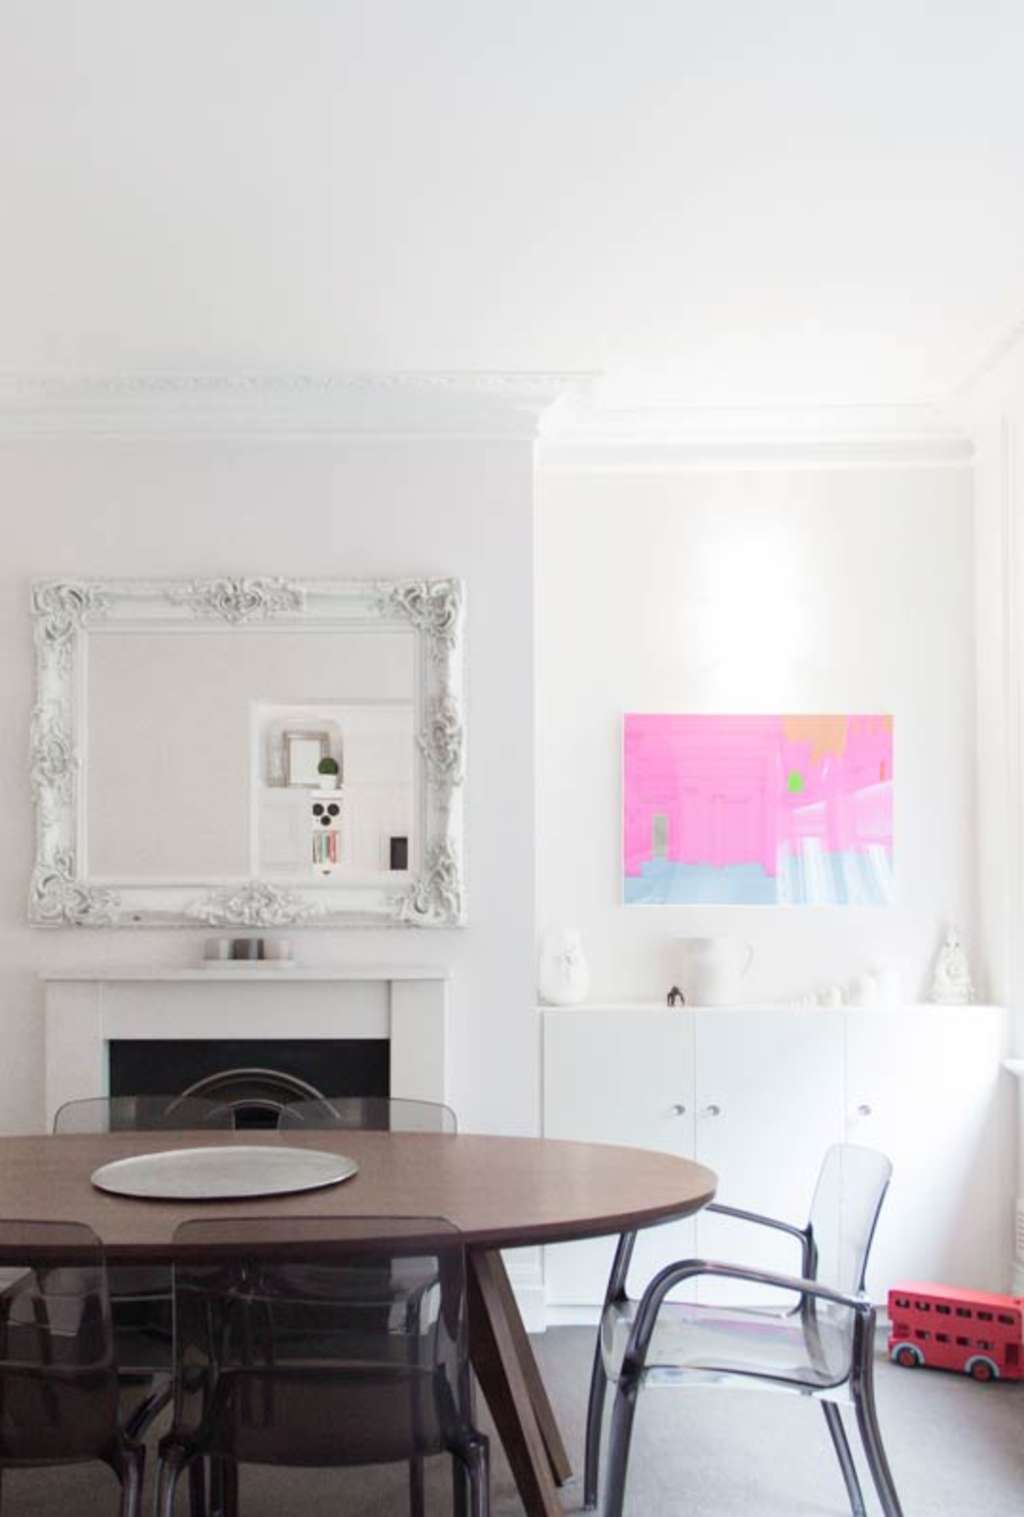 Rental Home Decorating Ideas: 5 Easy, High-Impact Rental Decorating Ideas (That Can Move